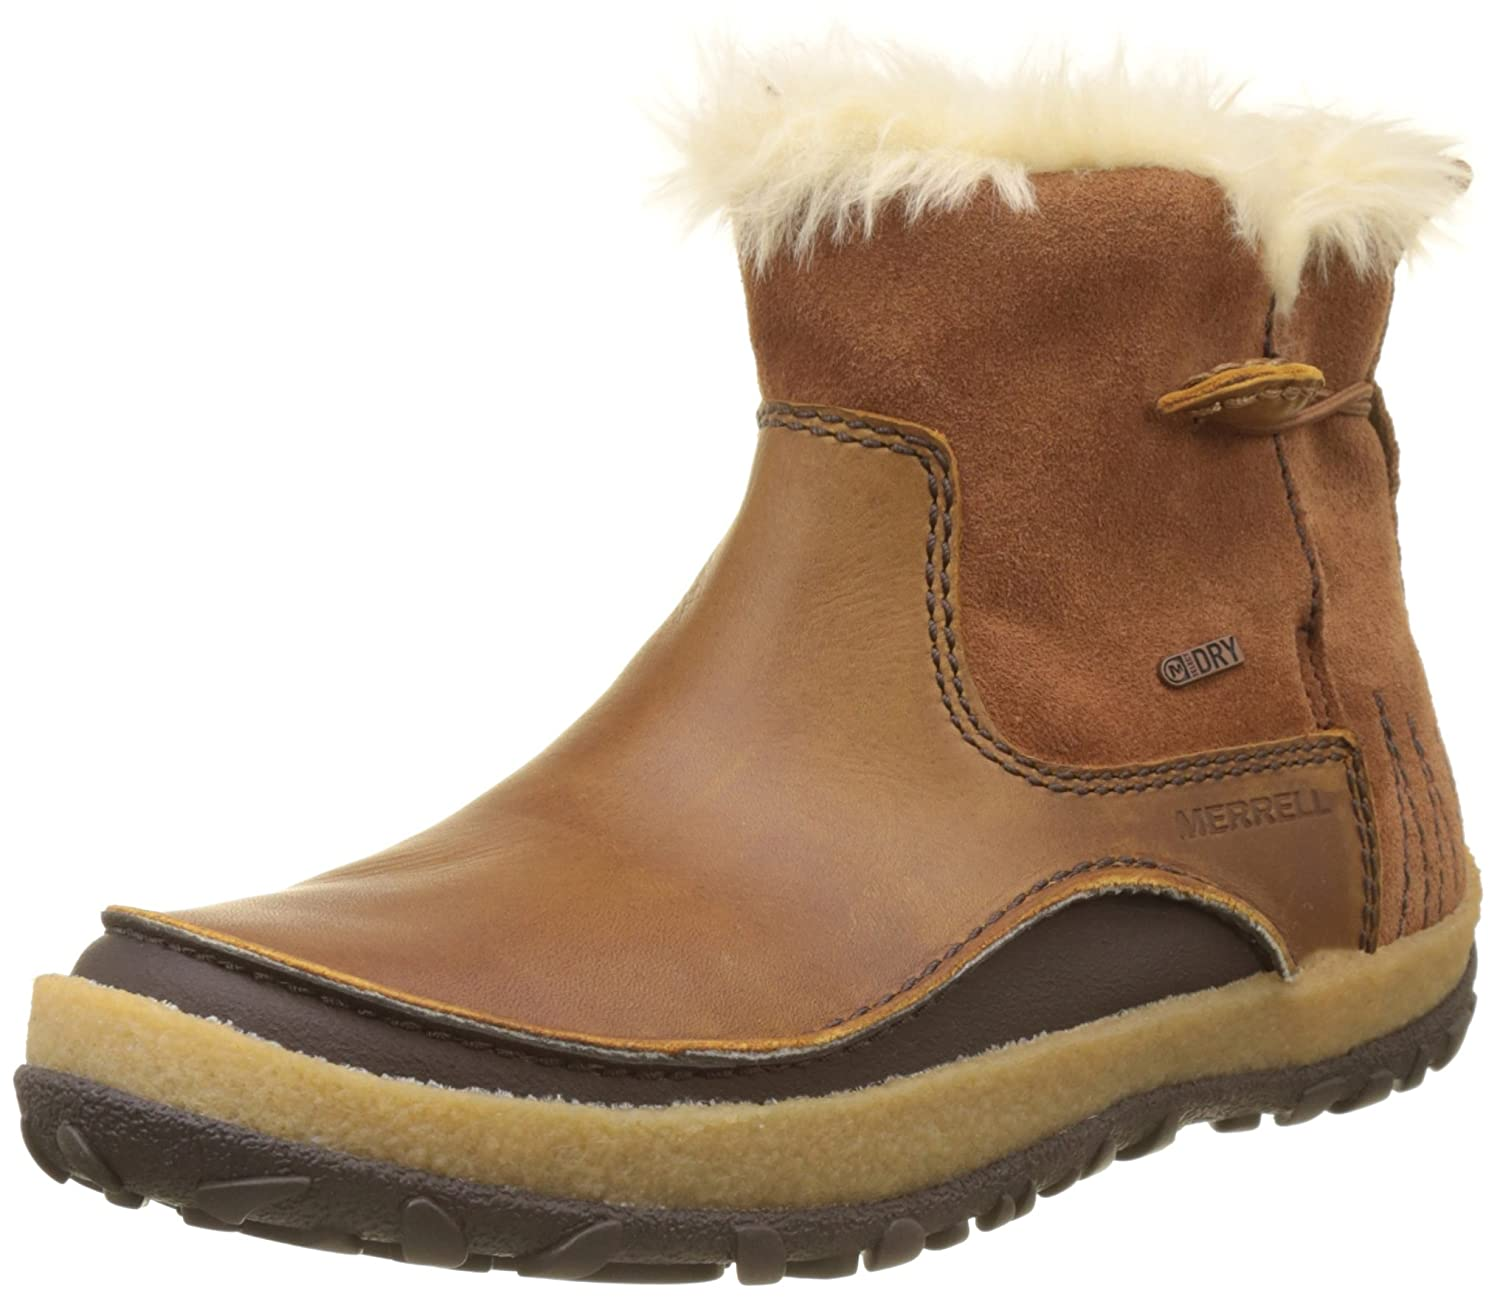 Merrell Women's Tremblant Pull on Polar Waterproof Snow Boot B01NBXUIW2 10.5 B(M) US|Merrell Oak